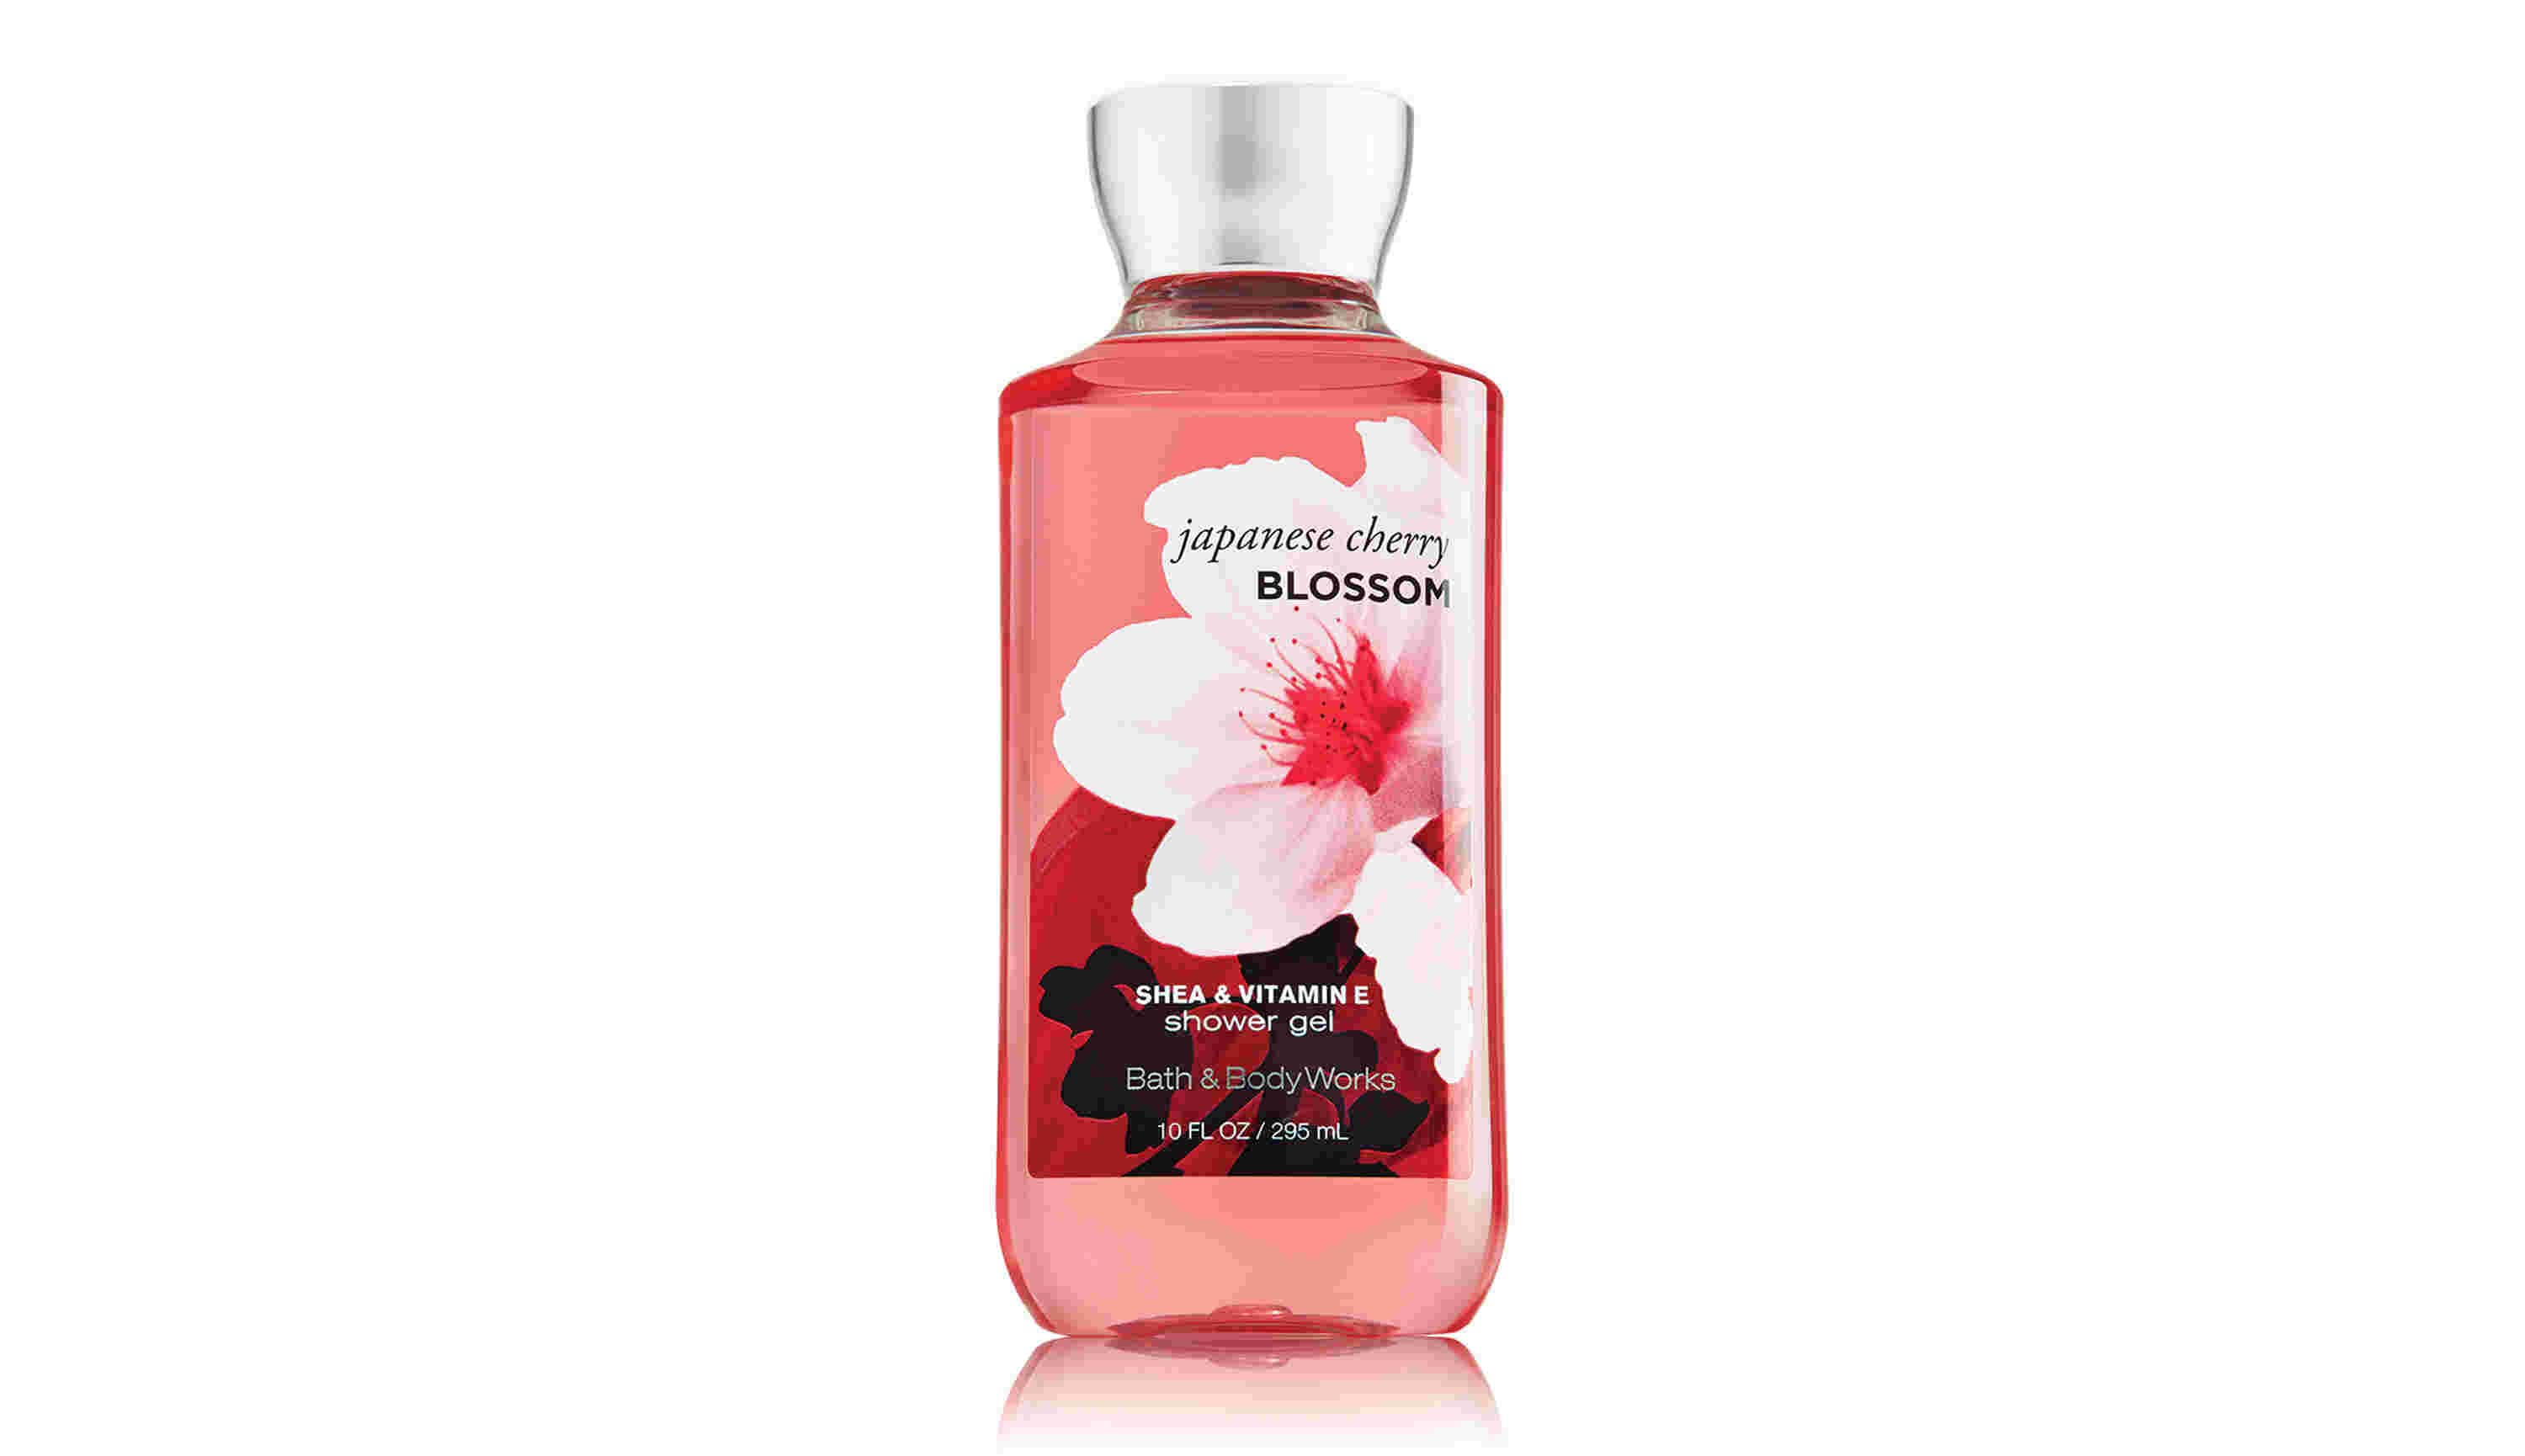 Japanese Cherry Blossom Full Size Bottle Shower Gel